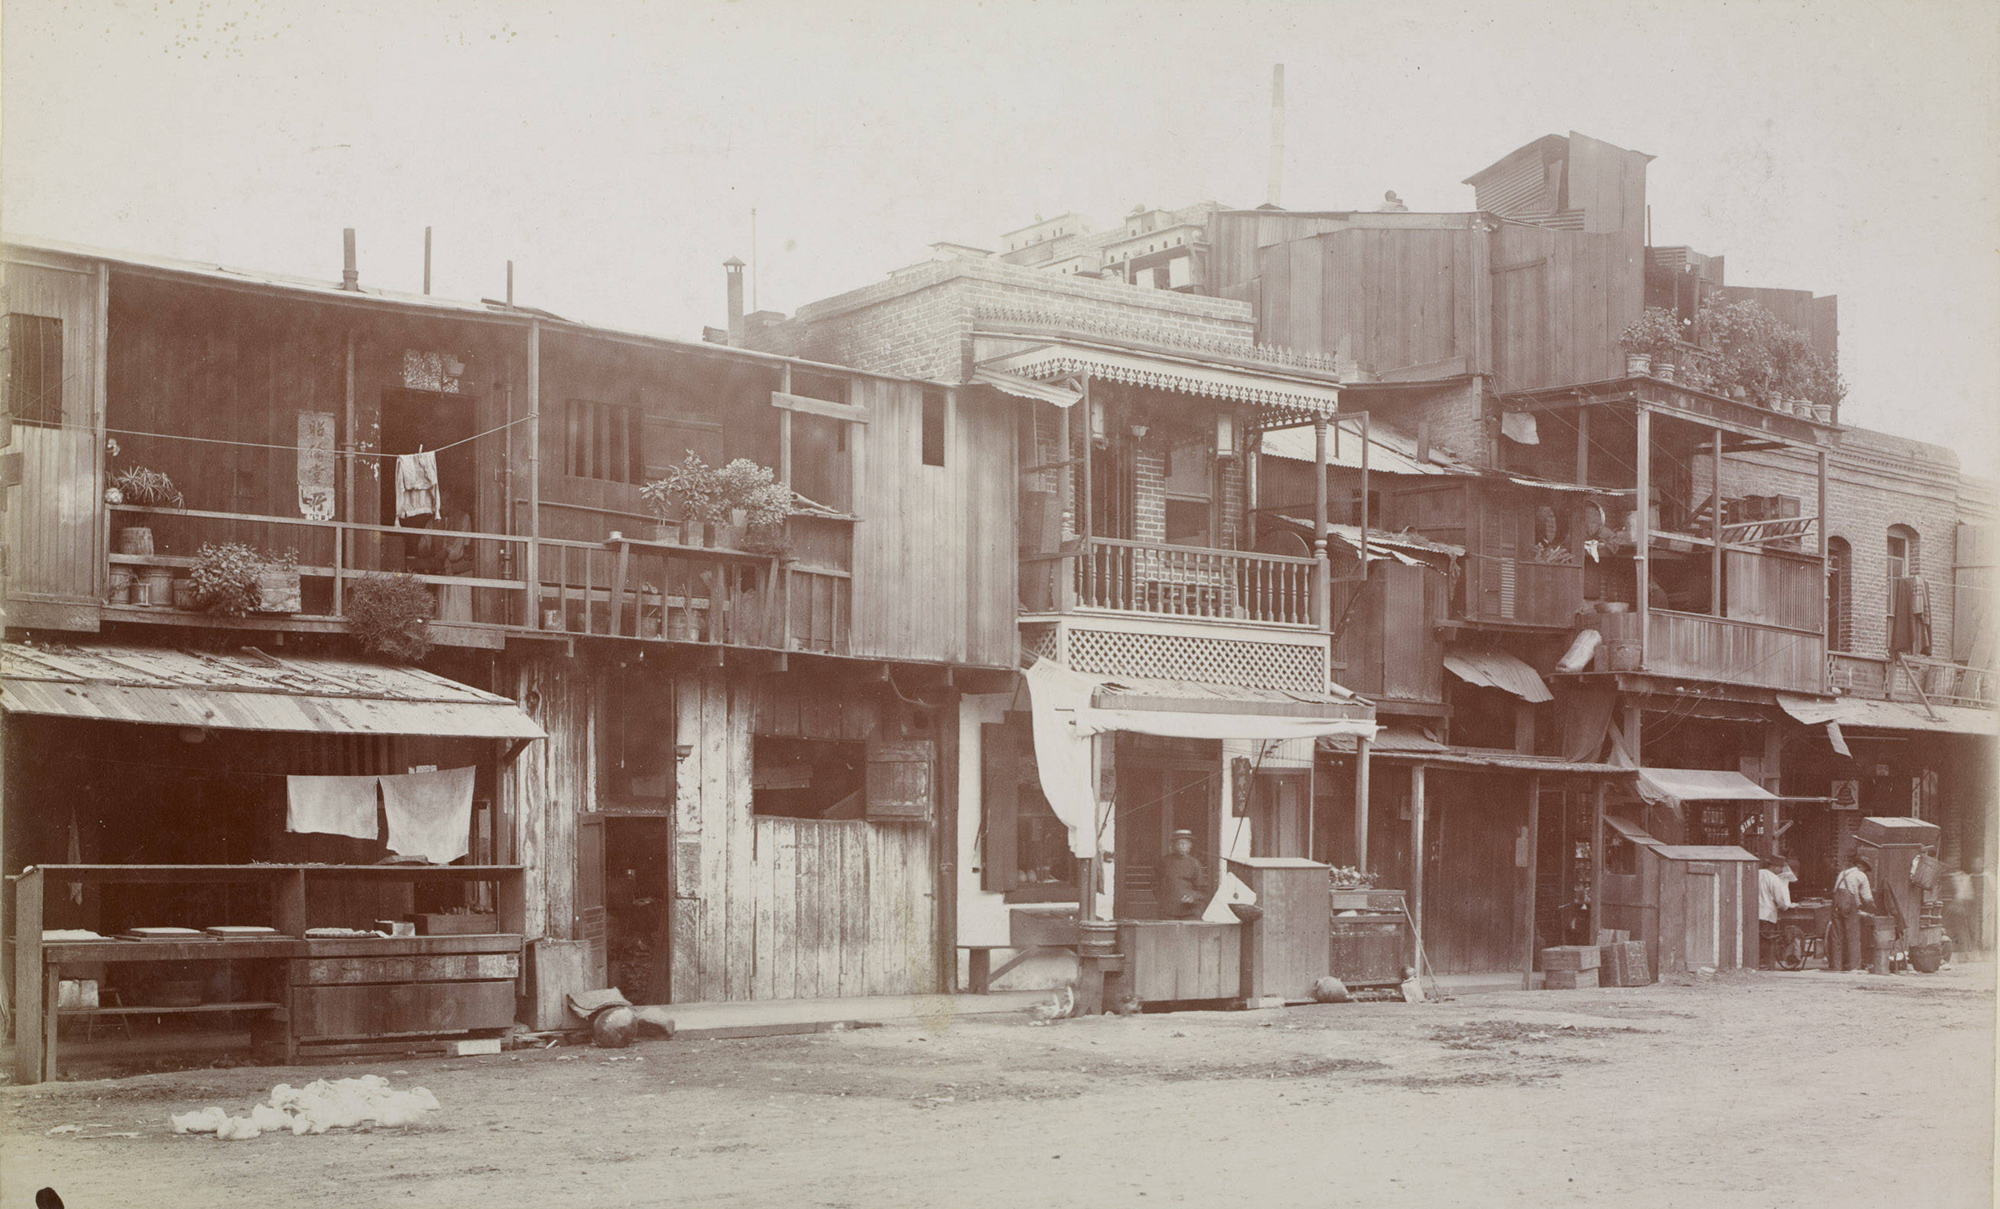 Street view of dwellings and businesses in Old Chinatown (1888)